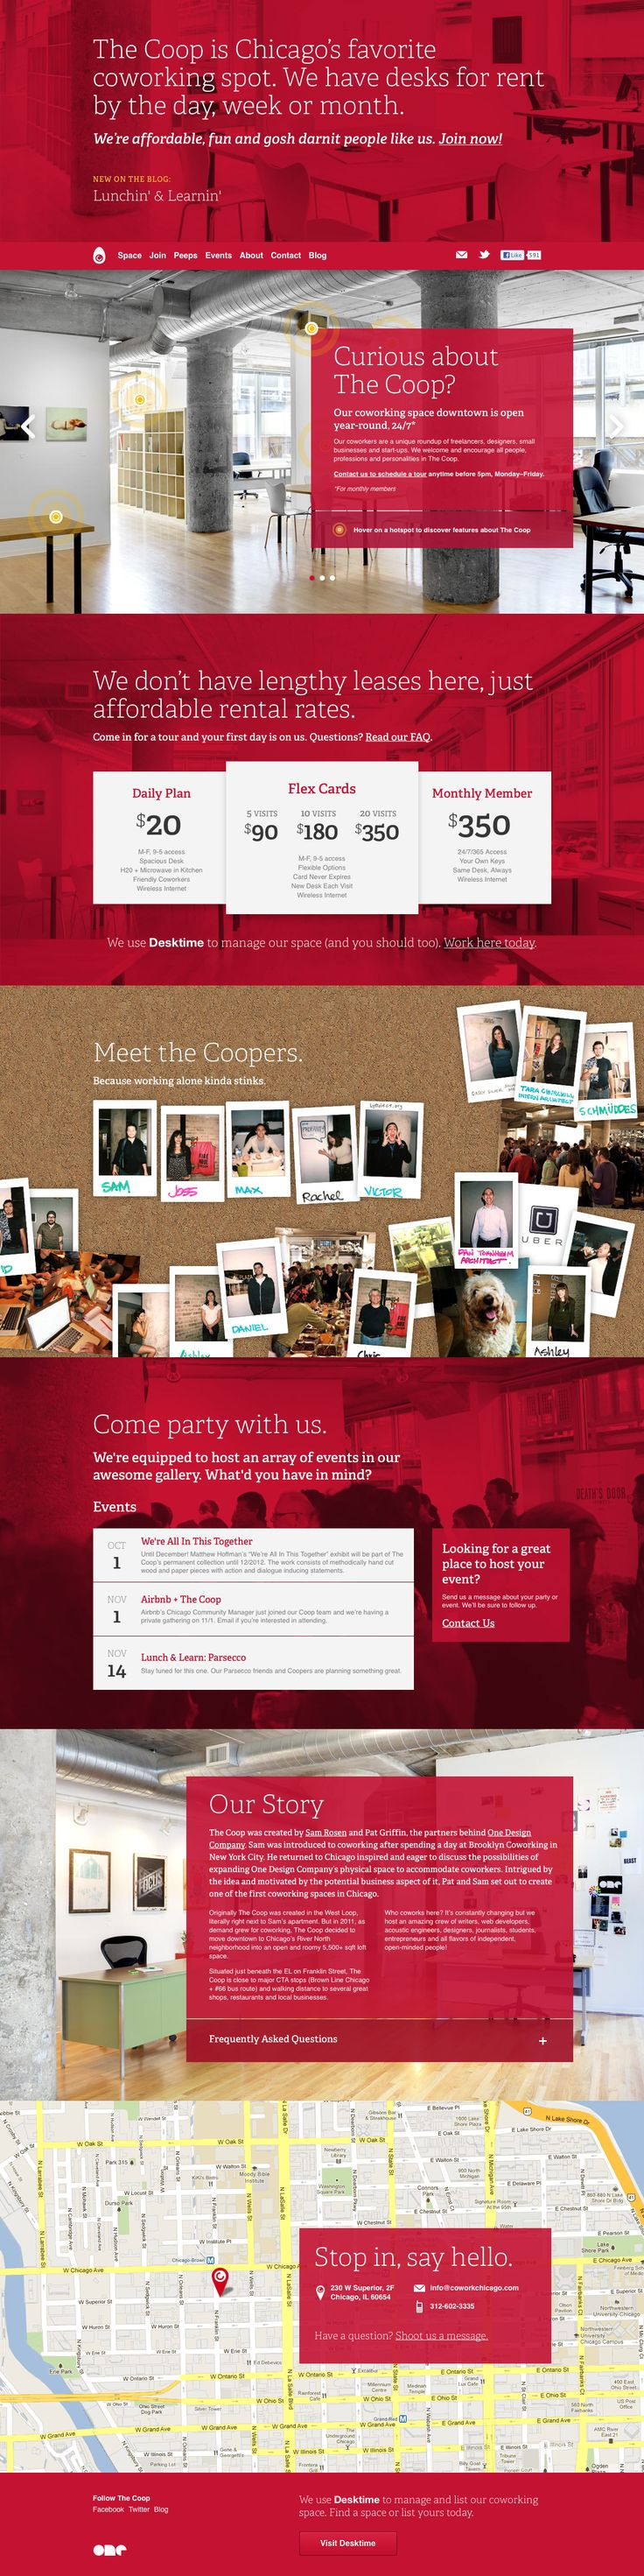 Coop - Chicago Coworking Space  http://coworkchicago.com/  #responsive #html5